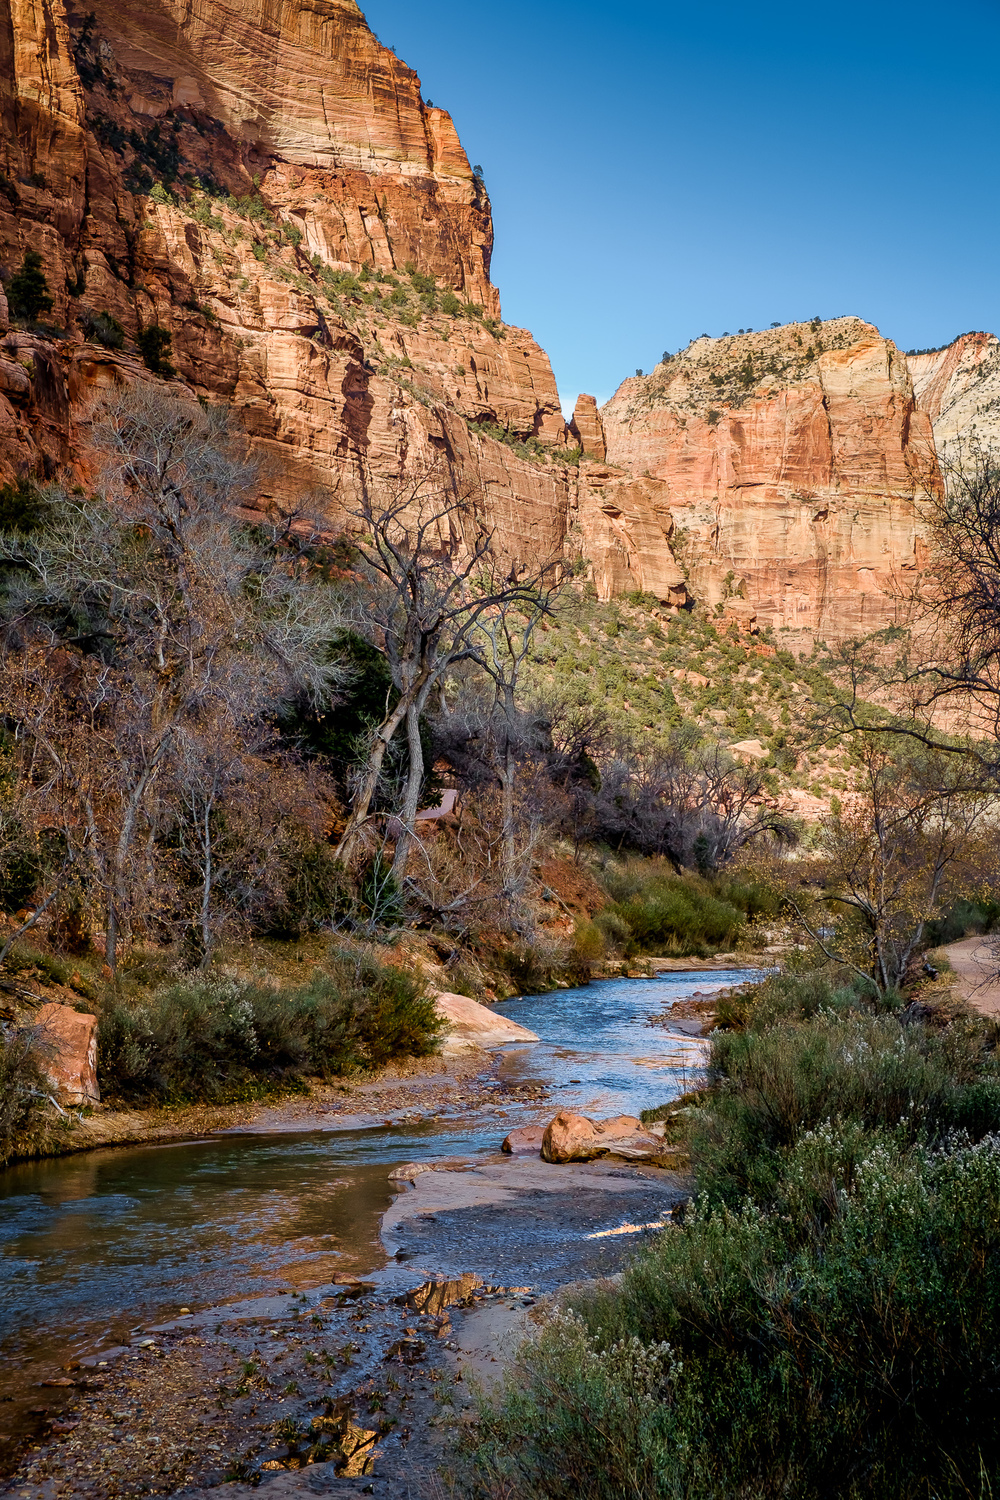 Virgin River -   The Virgin River winding through Zion Valley below Lady Mountain.   [ Fujifilm X100t, f/8, 1/250s, ISO 200 ]